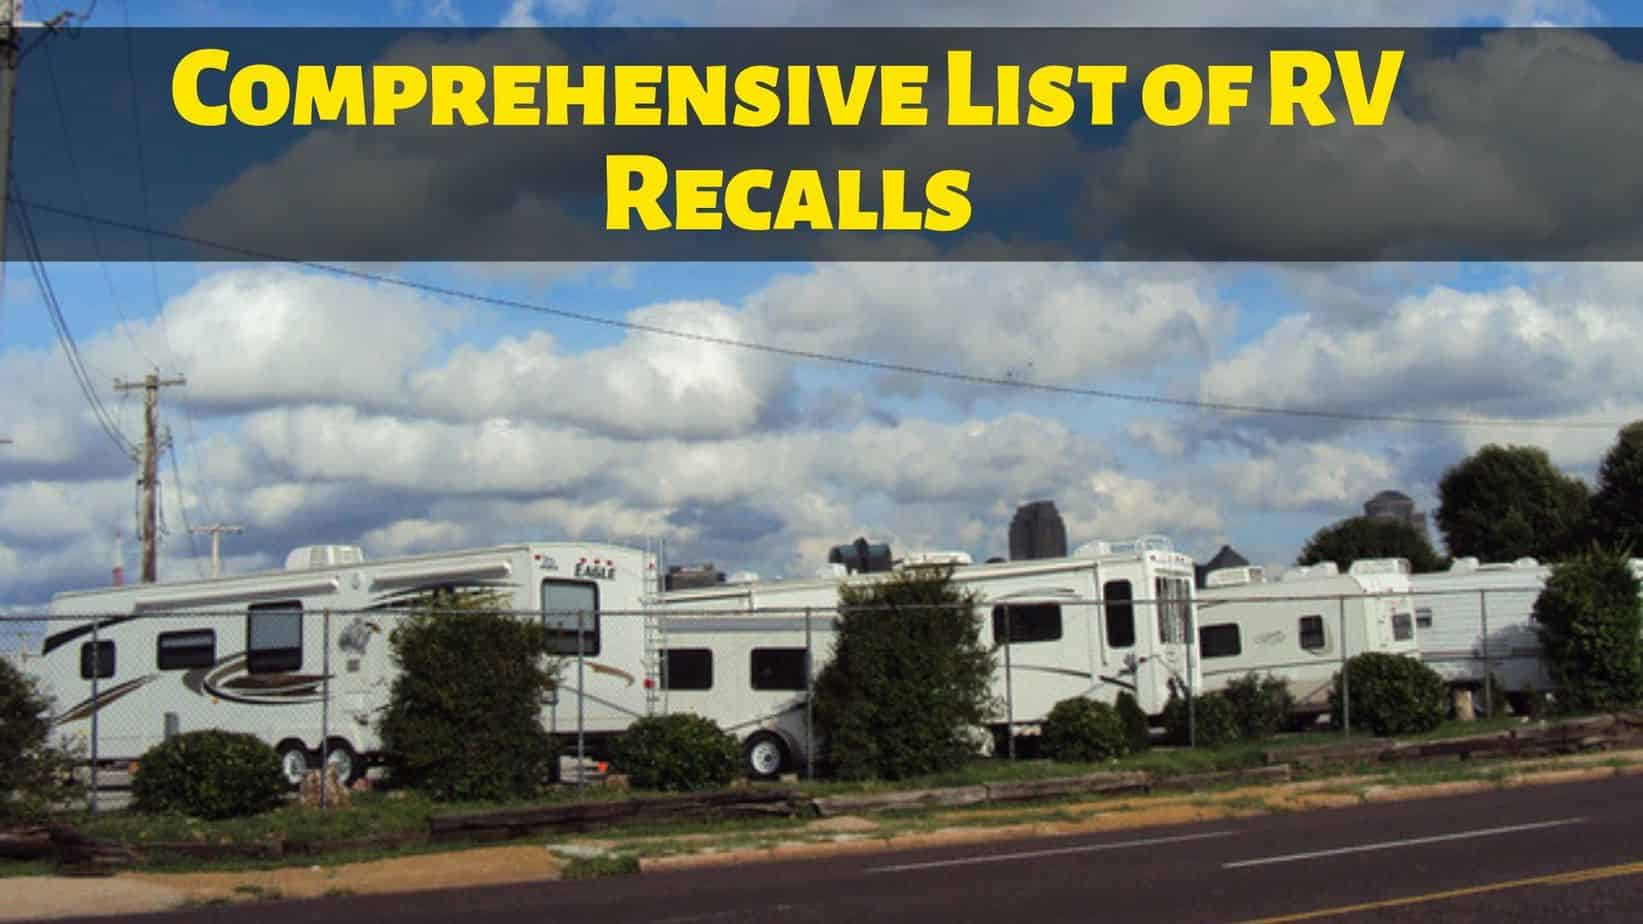 Comprehensive List of RV Recalls You Should Look Out For